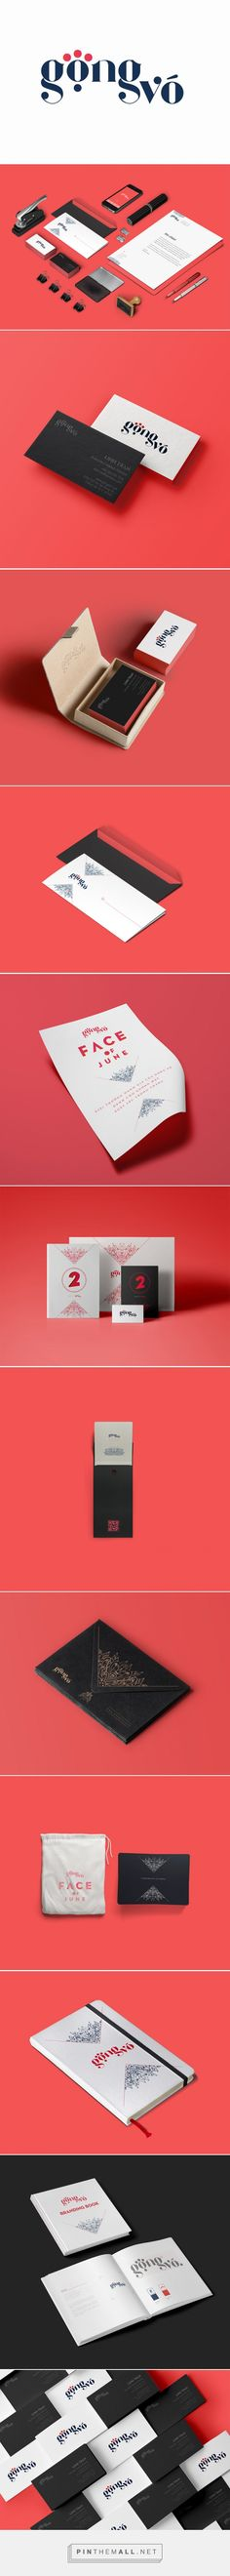 Gong Vo Branding by Tran Linh Tam | Inspiration Grid | Design Inspiration... - a grouped images picture - Pin Them All